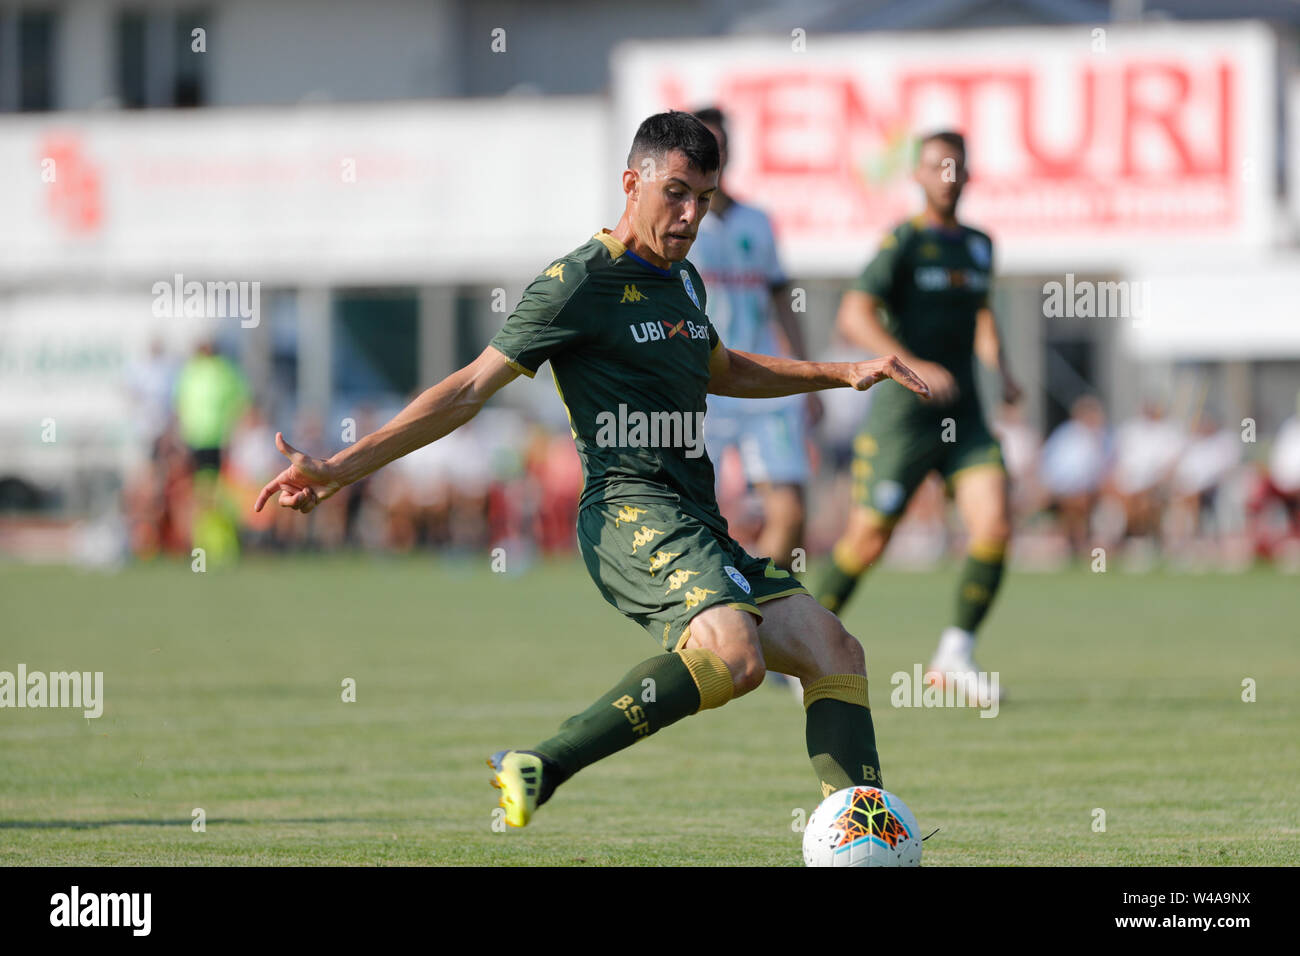 Darfo Boario, Italia. 21st July, 2019. Foto Stefano Nicoli/LaPresse21 luglio 2019 Darfo Boario (Bs), Italia sport calcio Amichevole Brescia Darfo Pre Campionato di calcio Serie A 2019/2020 - Nella foto: Dimitri Bisoli Photo Stefano Nicoli/LaPresse July 20, 2019 Darfo Boario (Bs), Italy sport soccer Friendly match Brescia Darfo League A TIM 2019/2020 - In the pic:Dimitri Bisoli Credit: LaPresse/Alamy Live News - Stock Image